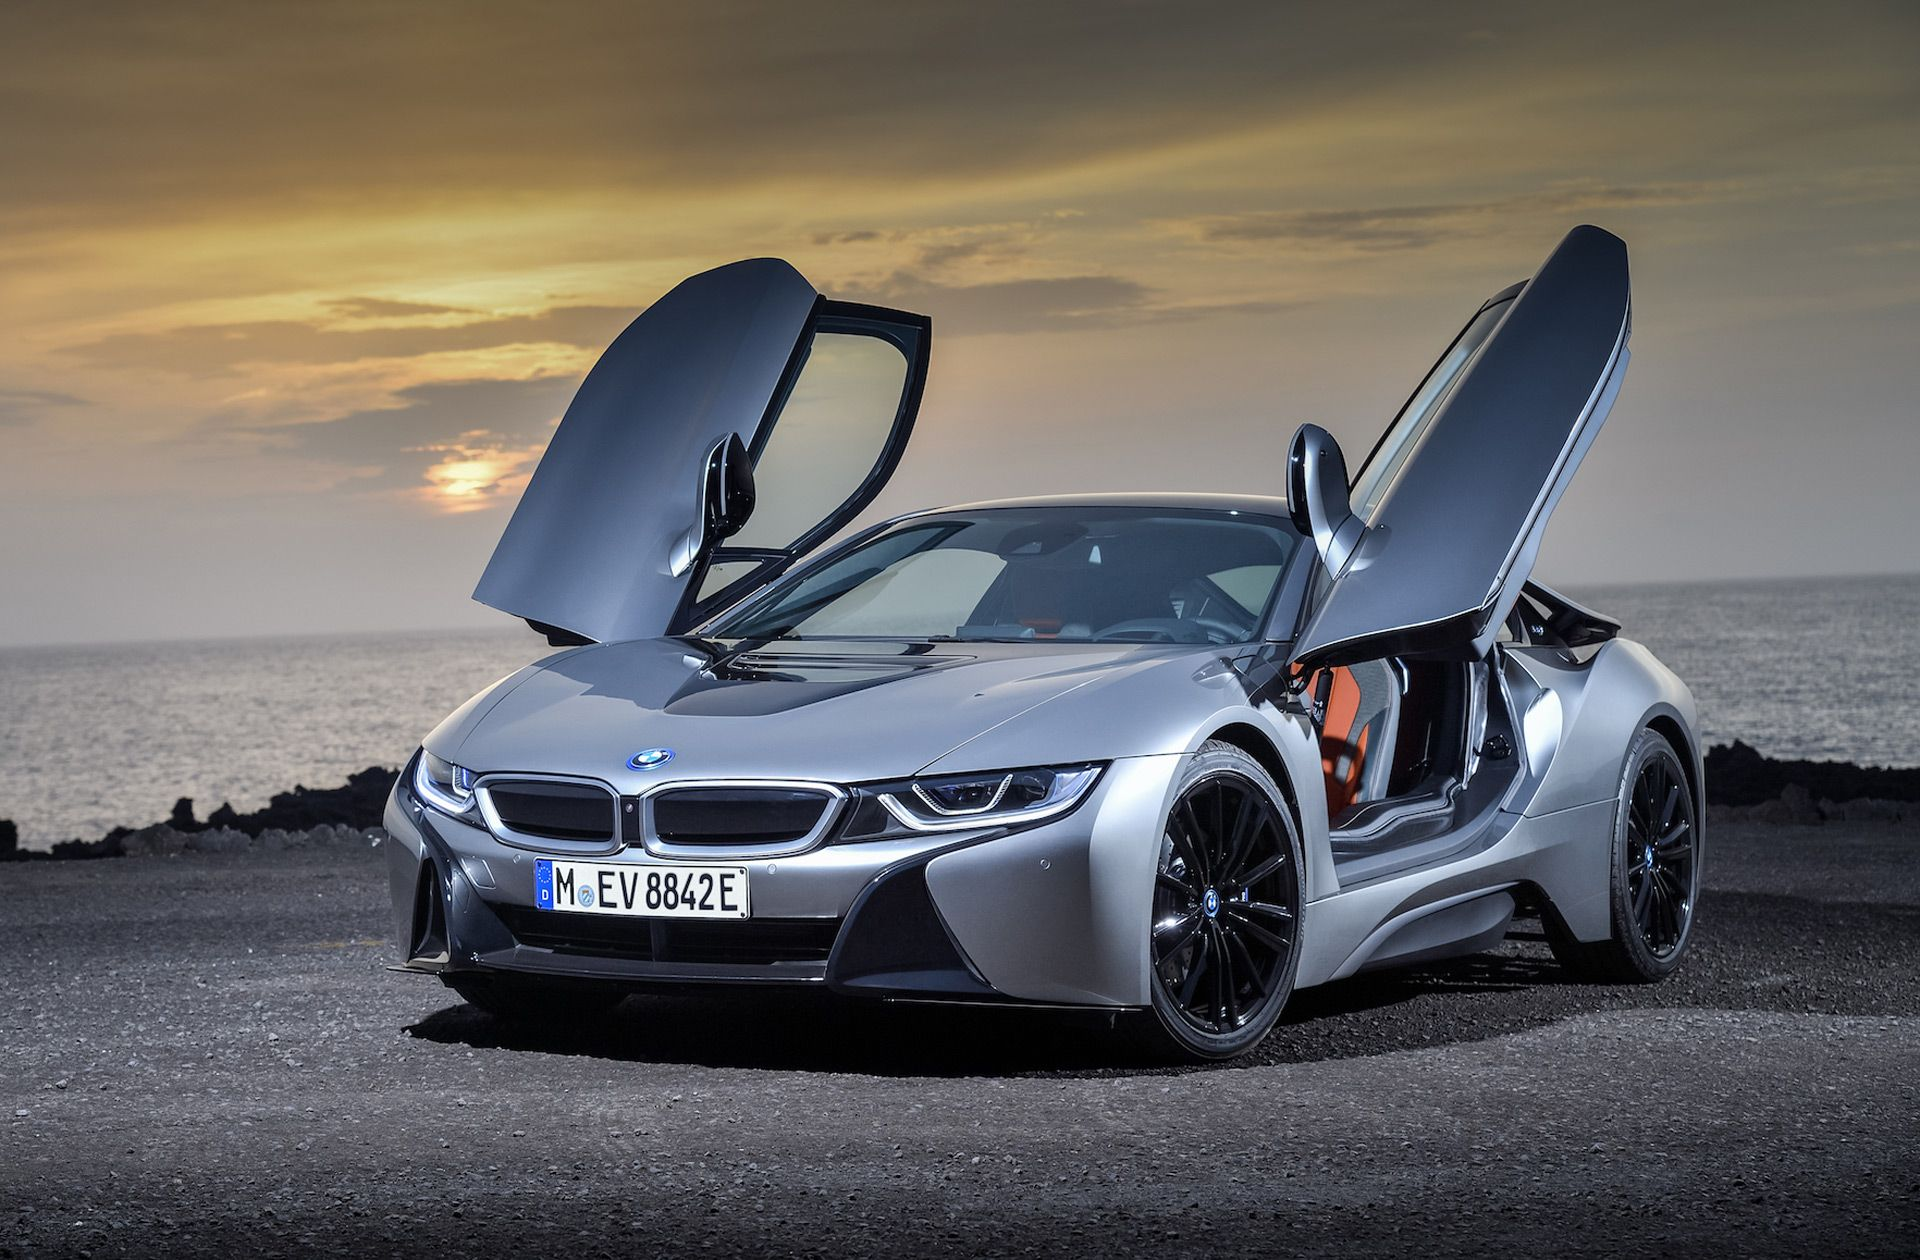 Bmw I8 Fuel Economy In 2020 Bmw I8 Bmw Hybrid Sports Car